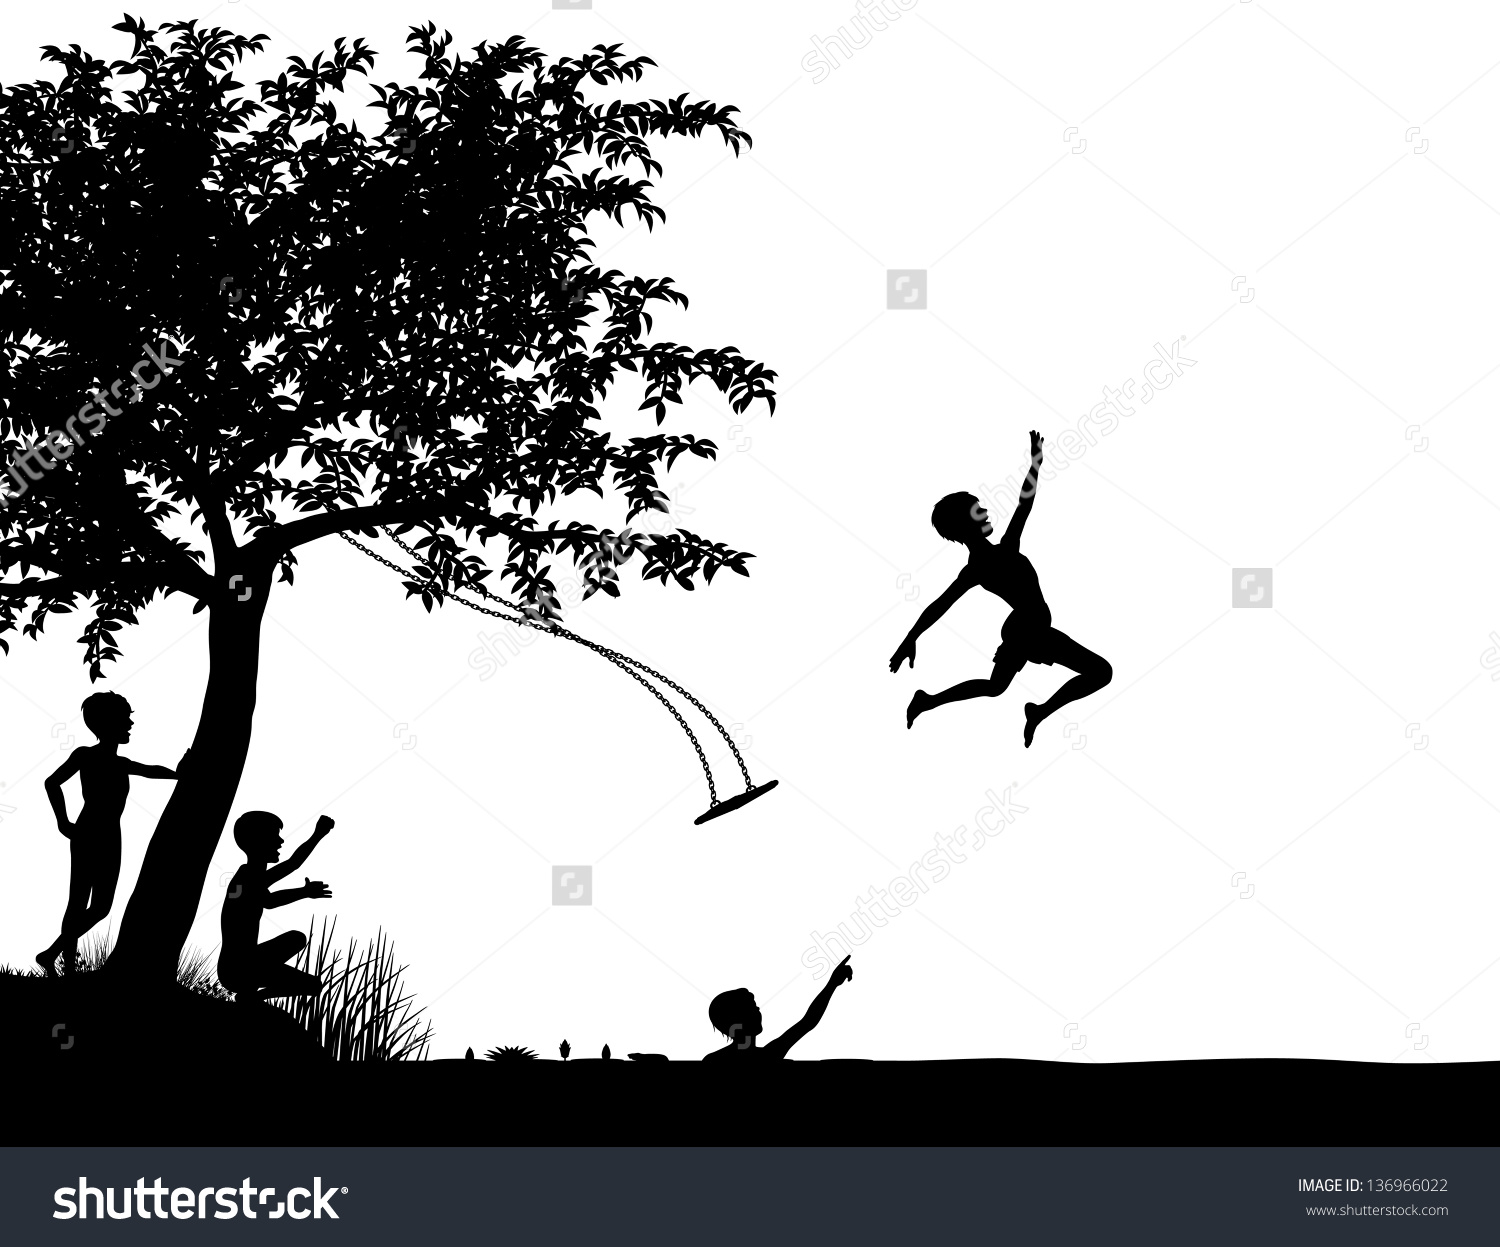 Editable Vector Silhouette Young Boys Leaping Stock Vector.